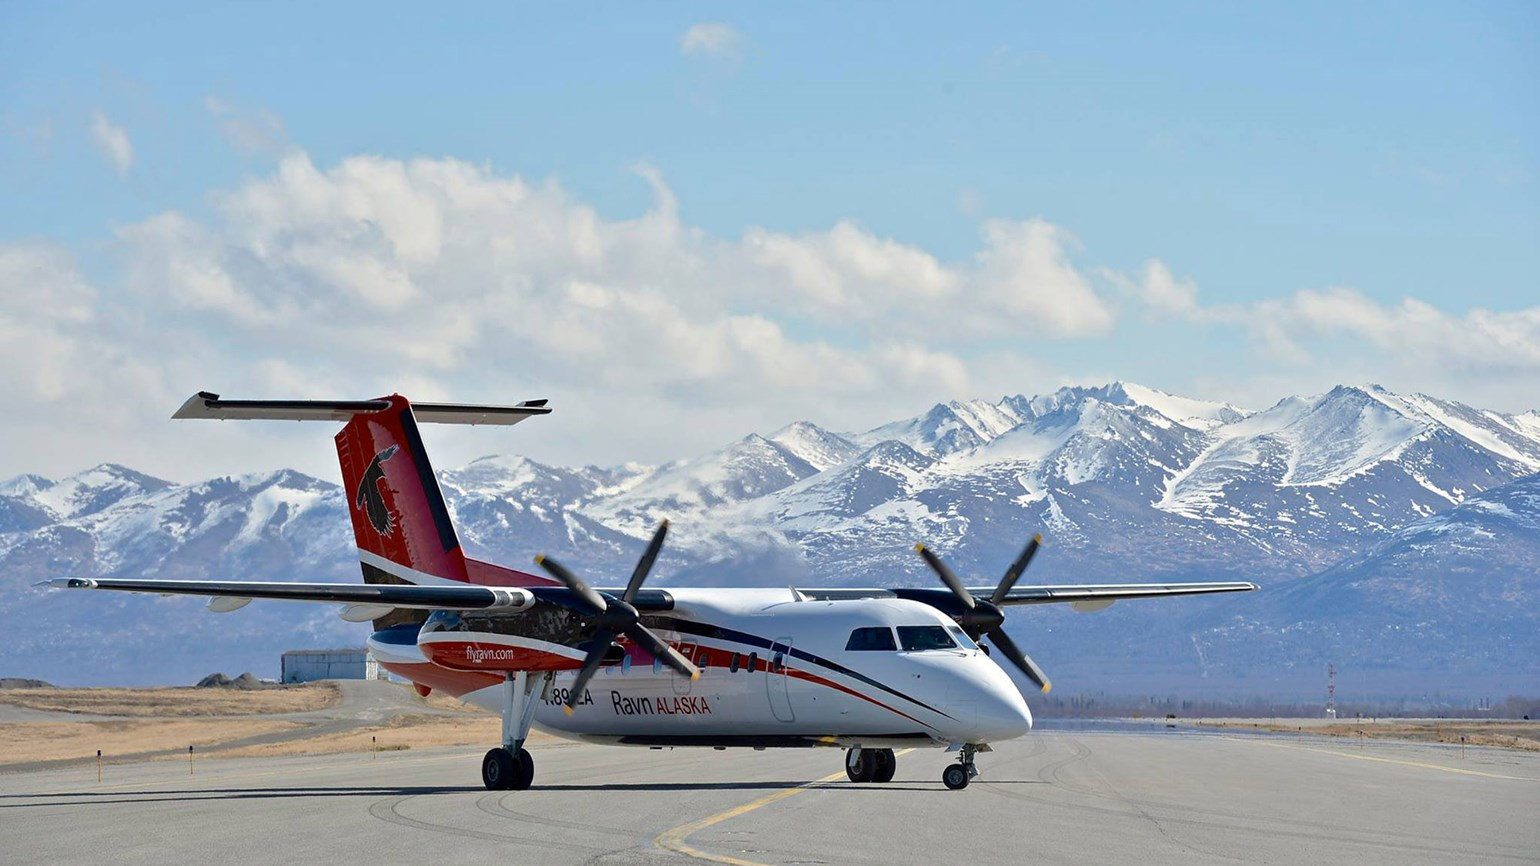 Alaska regional carrier RavnAir files Chapter 11